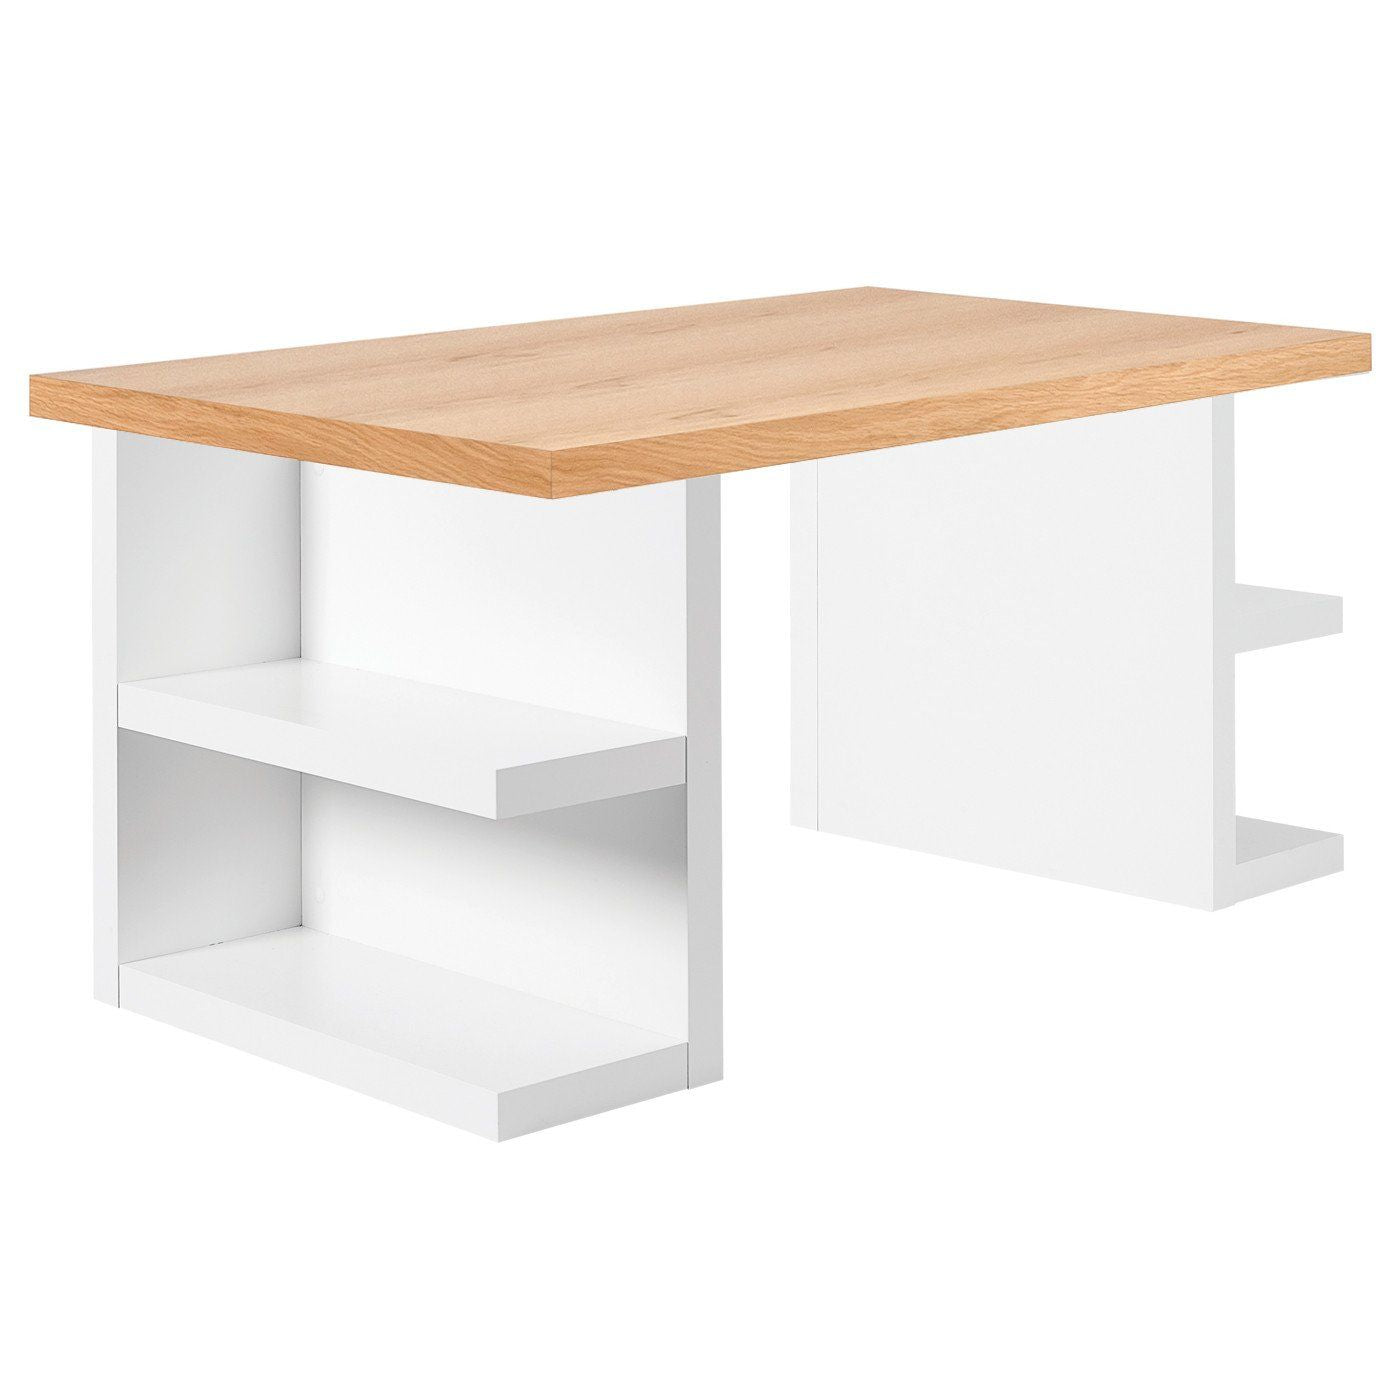 Buy Temahome 9500 620232 Multi 71 Table Top W Storage Legs Oak Top Pure White Legs At Contemporary Furniture Warehouse